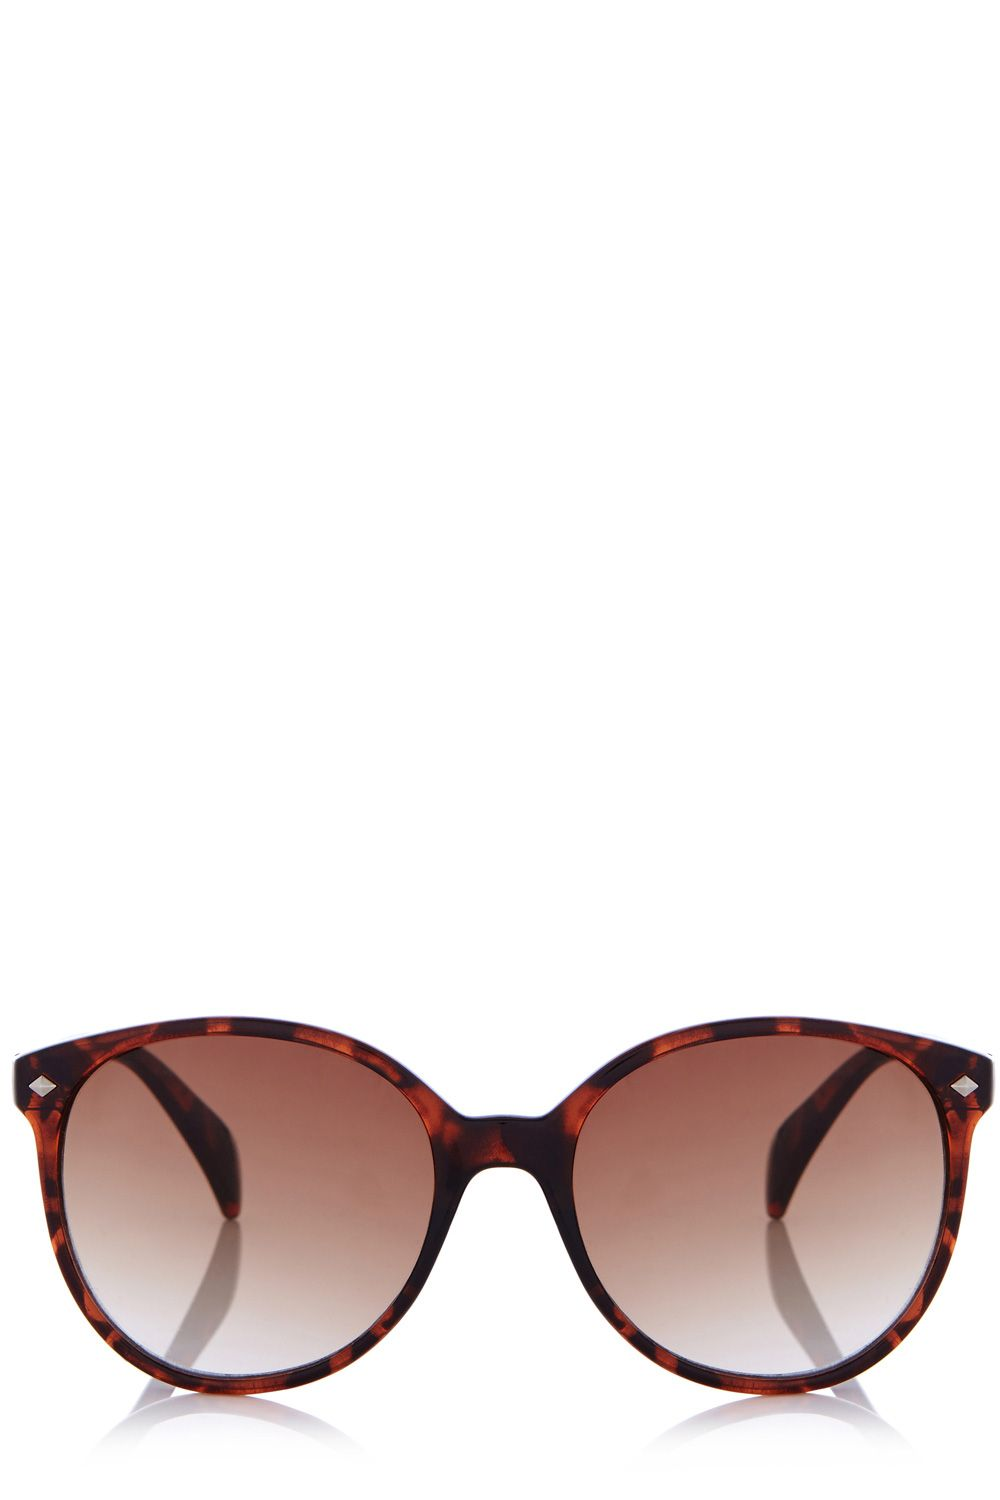 Preppy plastic sunglasses